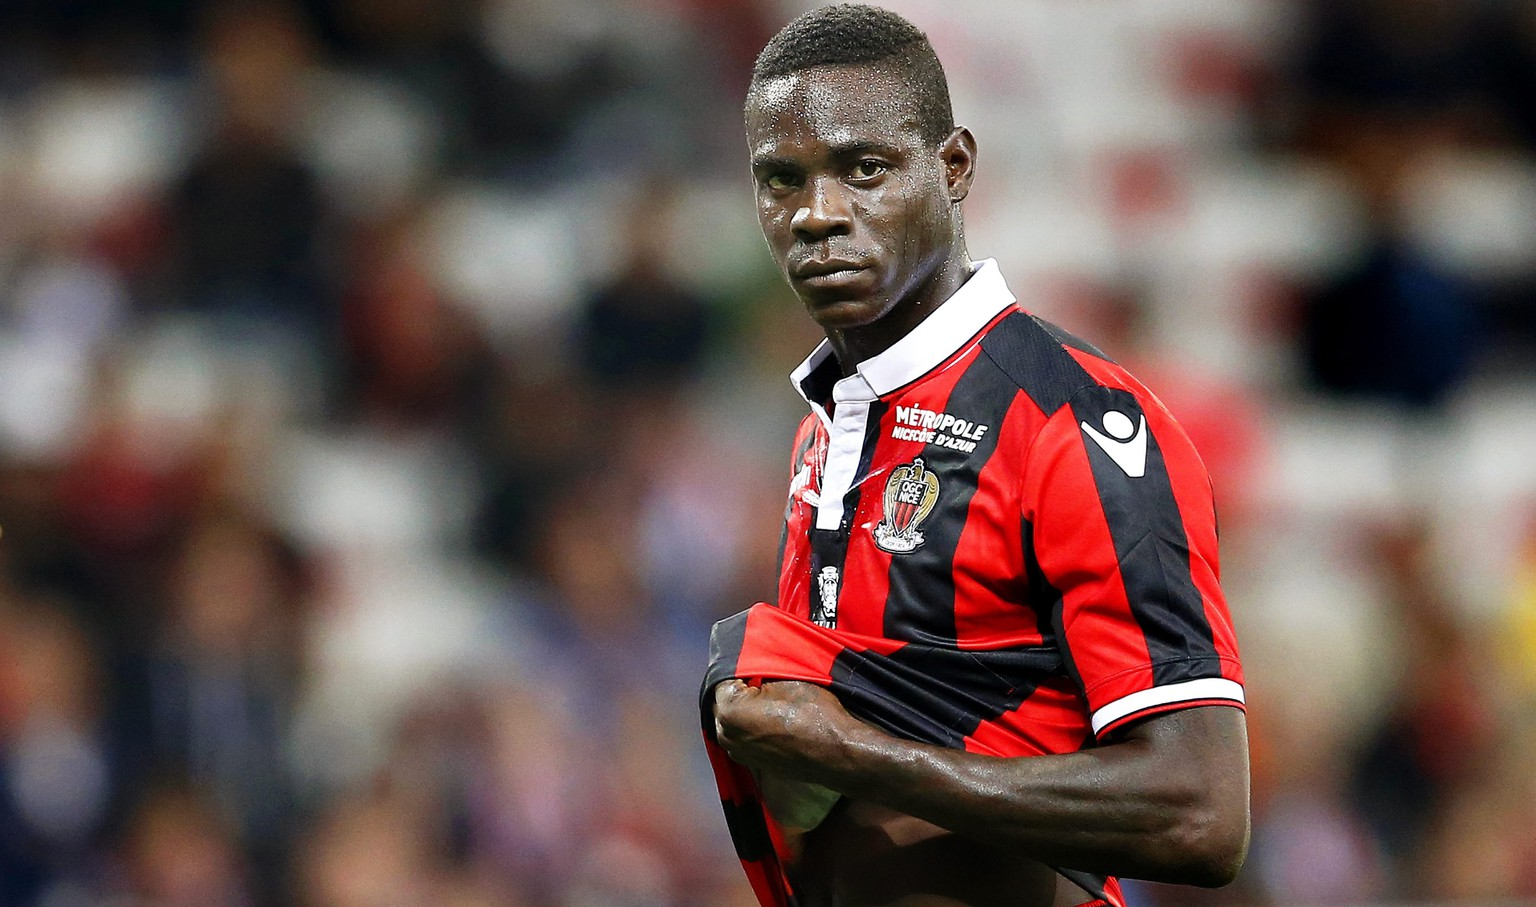 epa05550917 Mario Balotelli of Nice reacts during the French Ligue 1 soccer match between OGC Nice and AS Monaco in Nice, France, 21 September 2016.  EPA/SEBASTIEN NOGIER